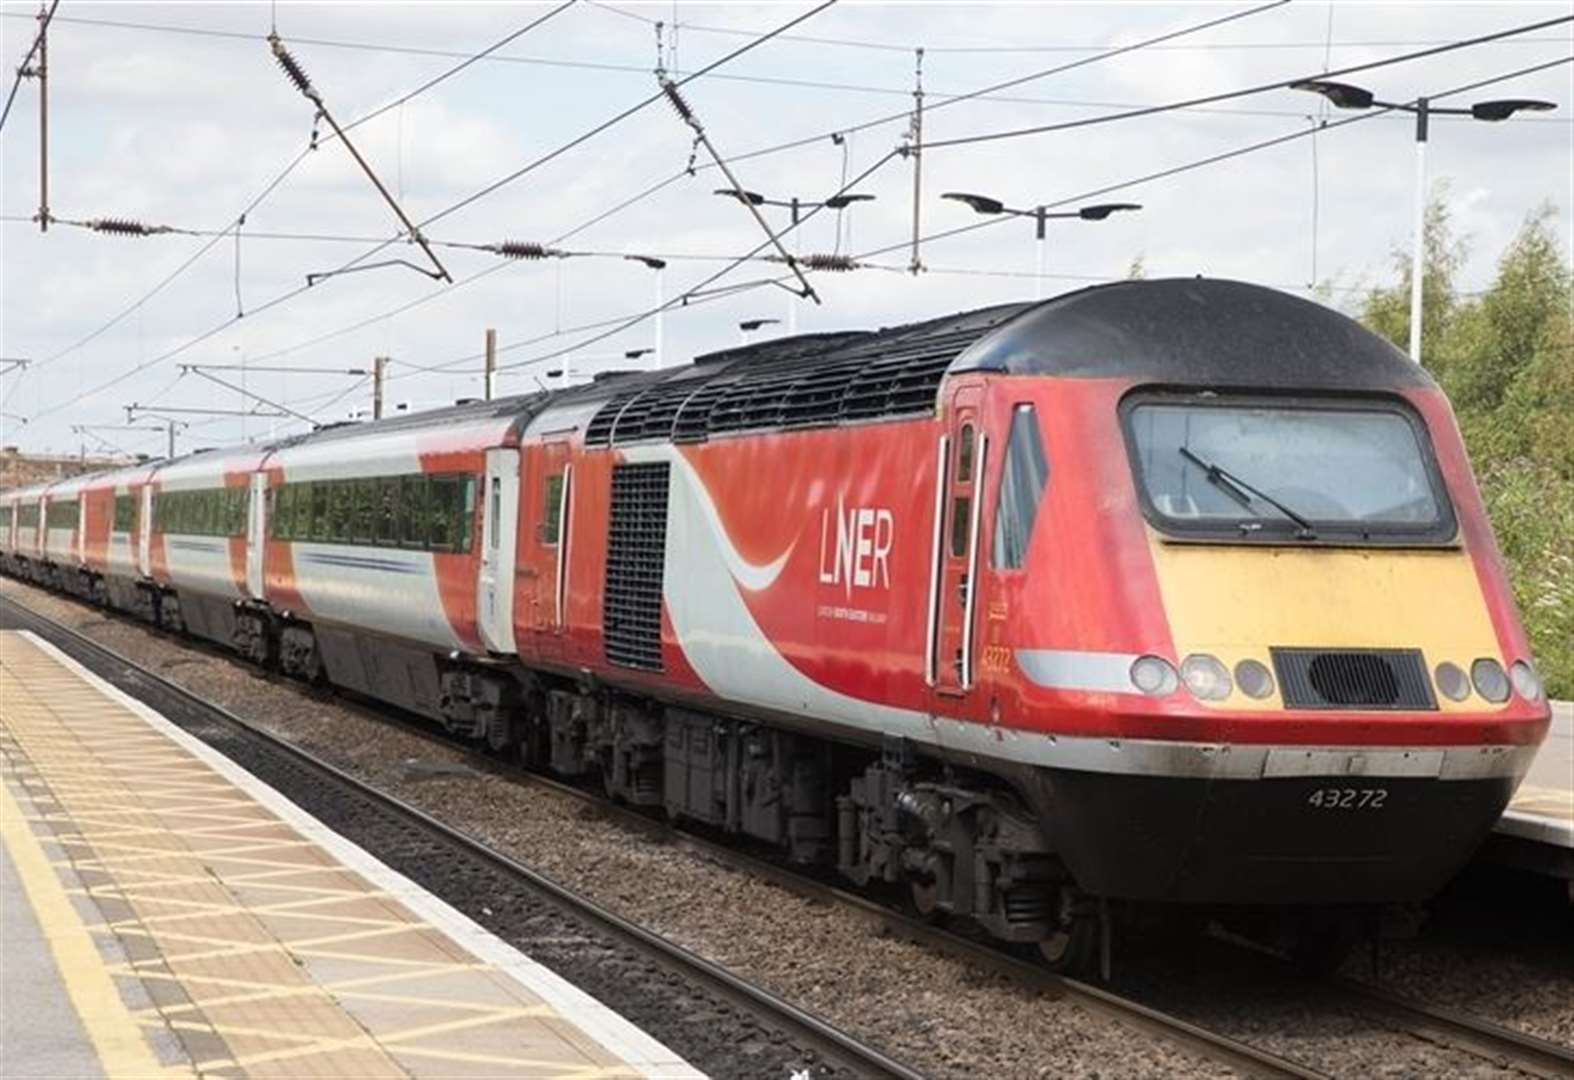 Person hit by train between Grantham and Newark Northgate